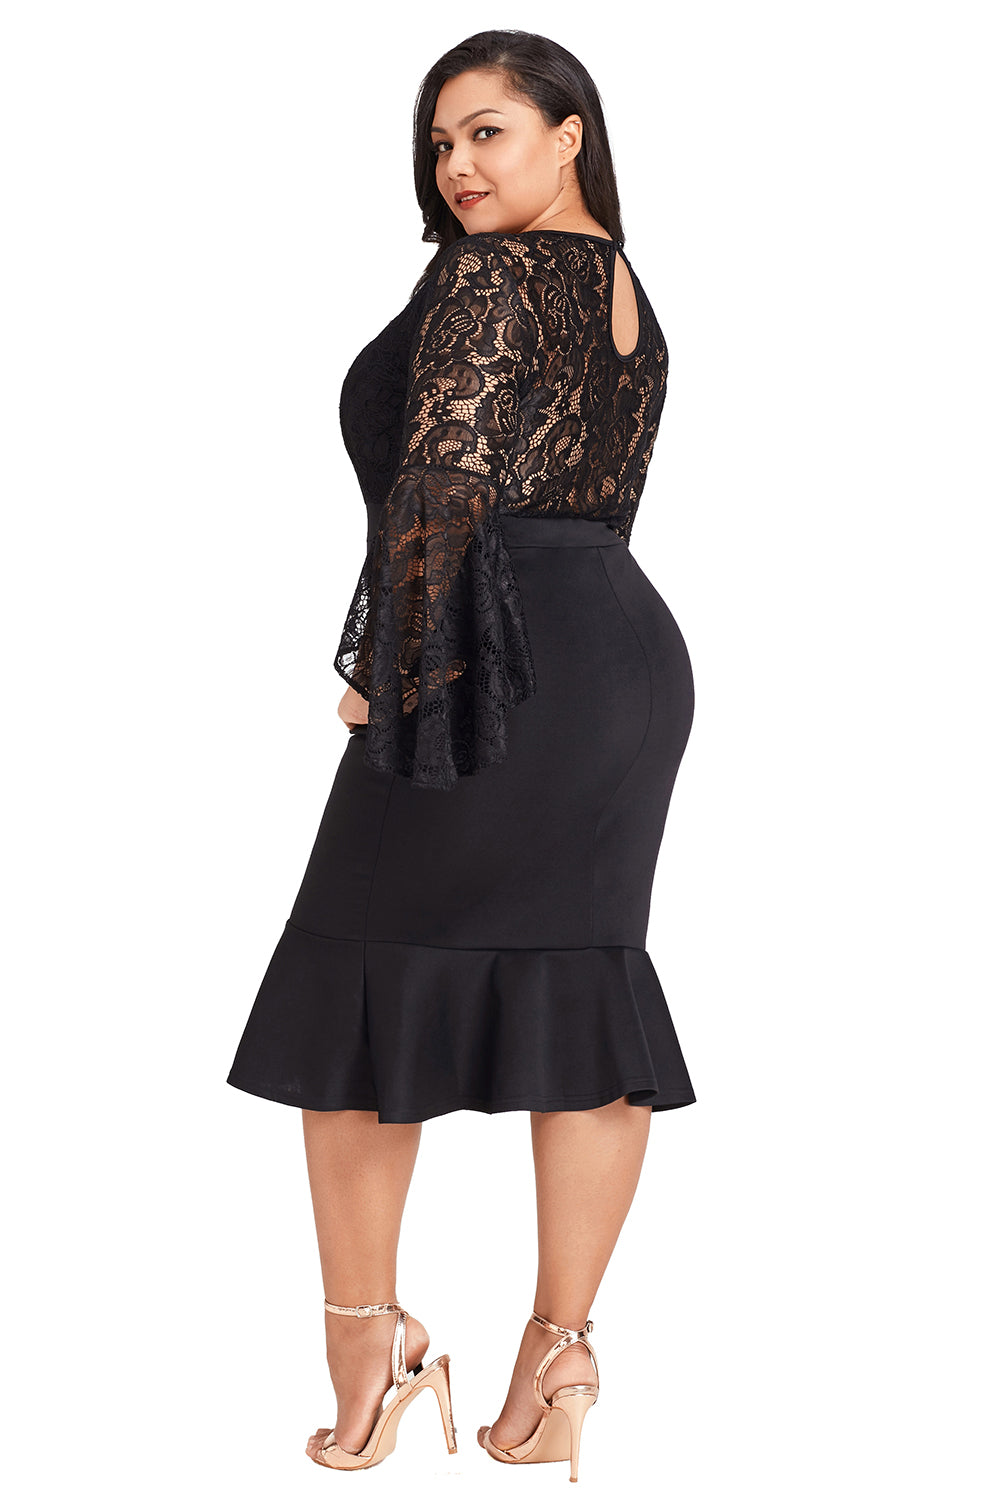 Black Plus Size Lace Bell Sleeve Mermaid Bodycon Dress LAVELIQ - Laveliqus